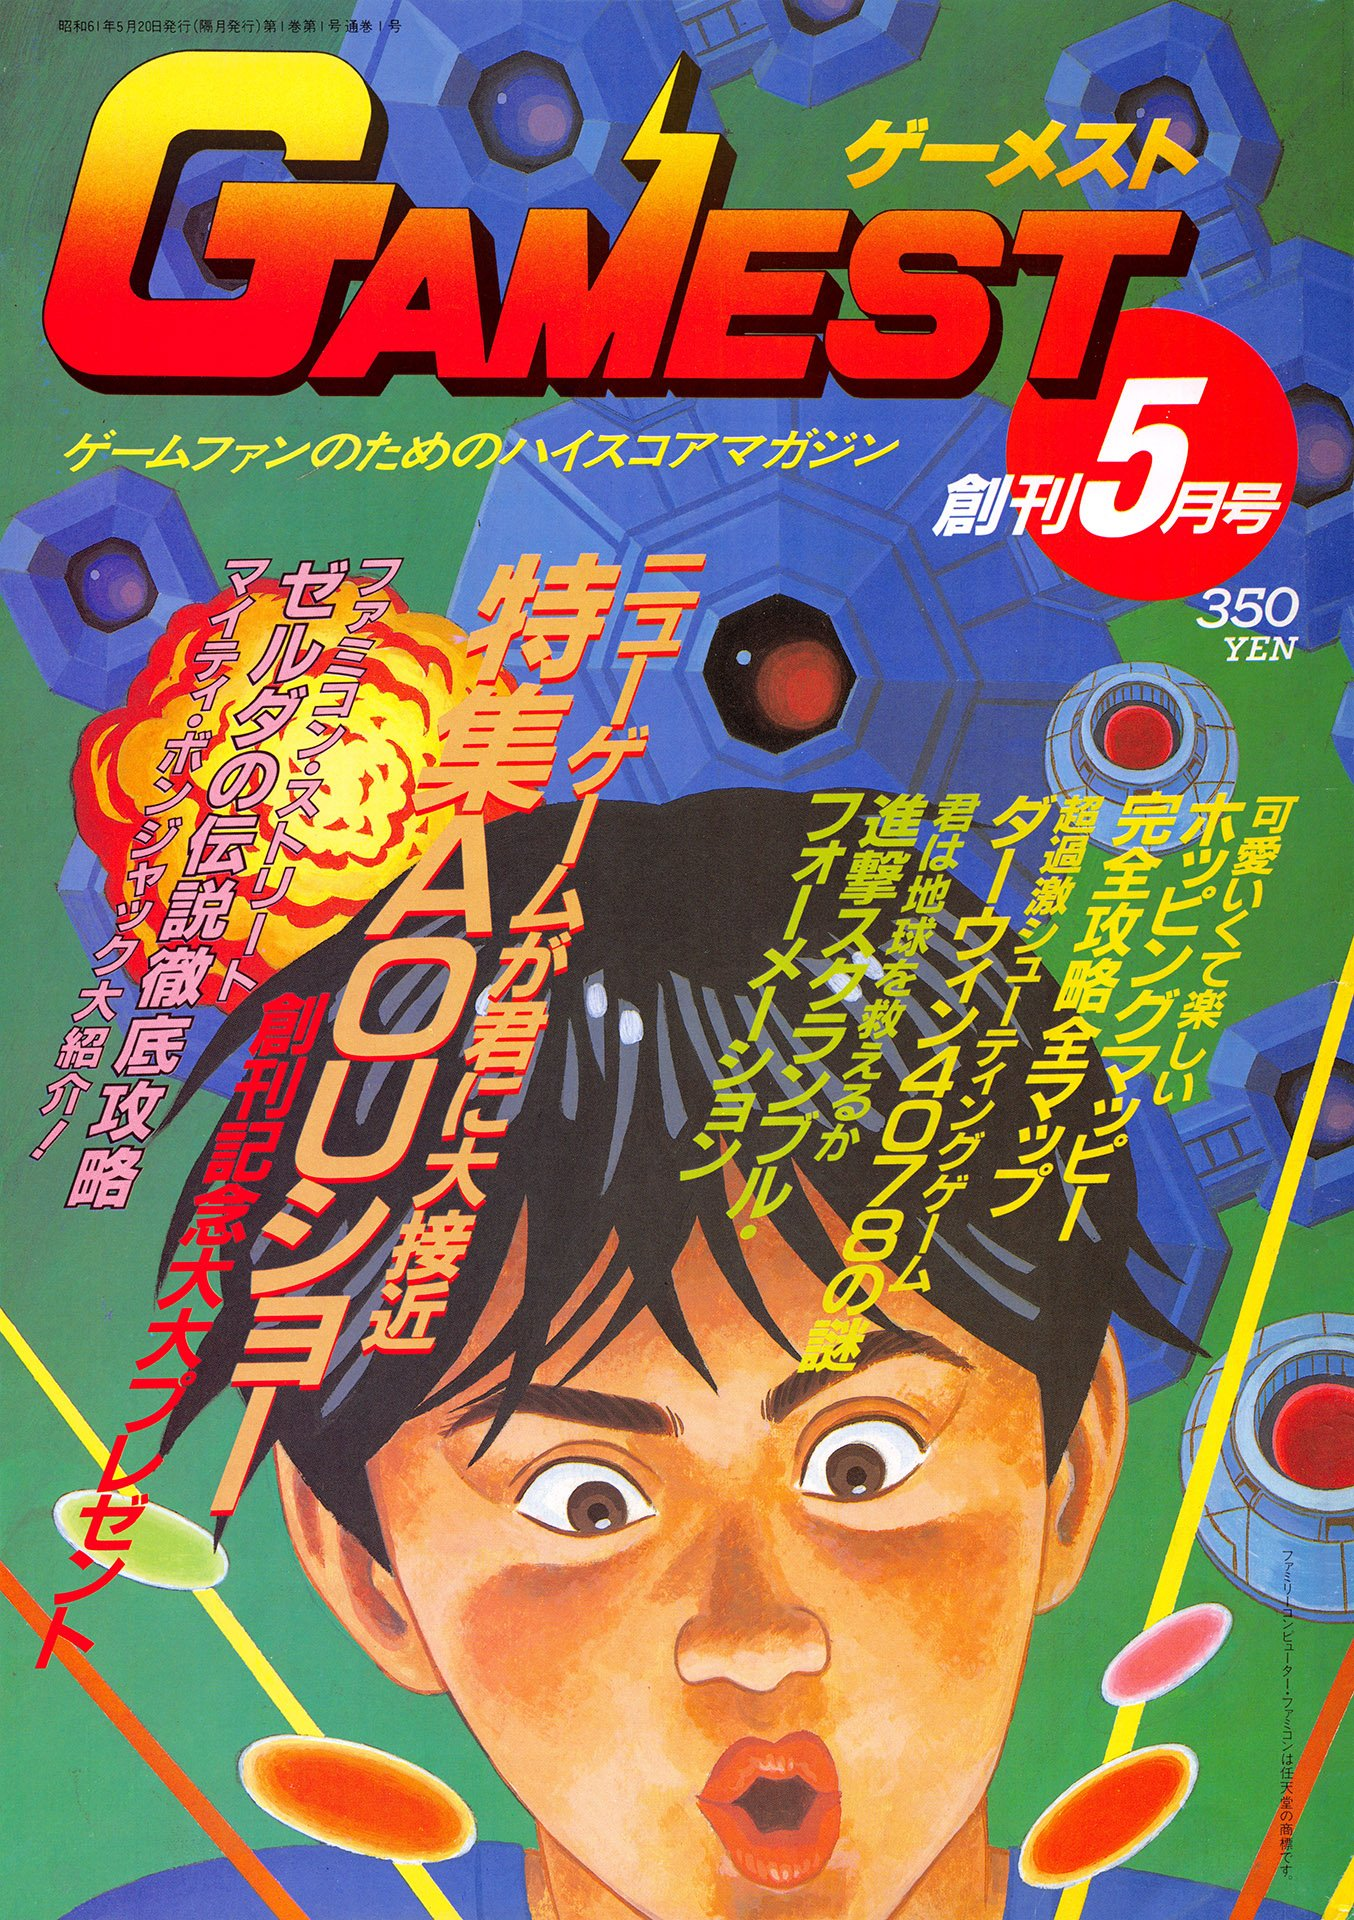 Gamest Issue 001 (May 1986)